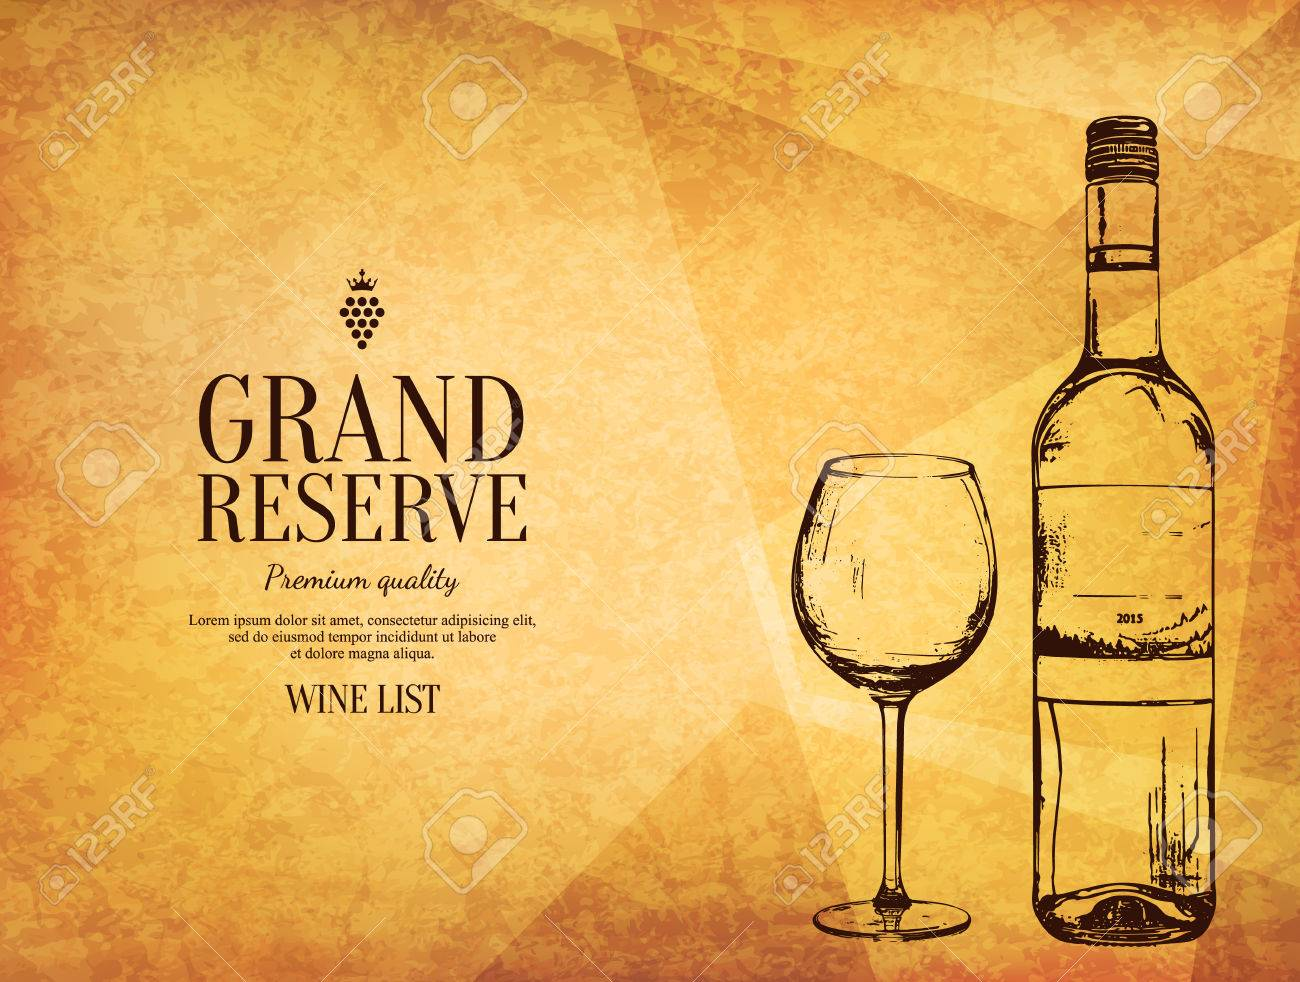 Wine List Design Vector Brochure Template For Winery Cafe